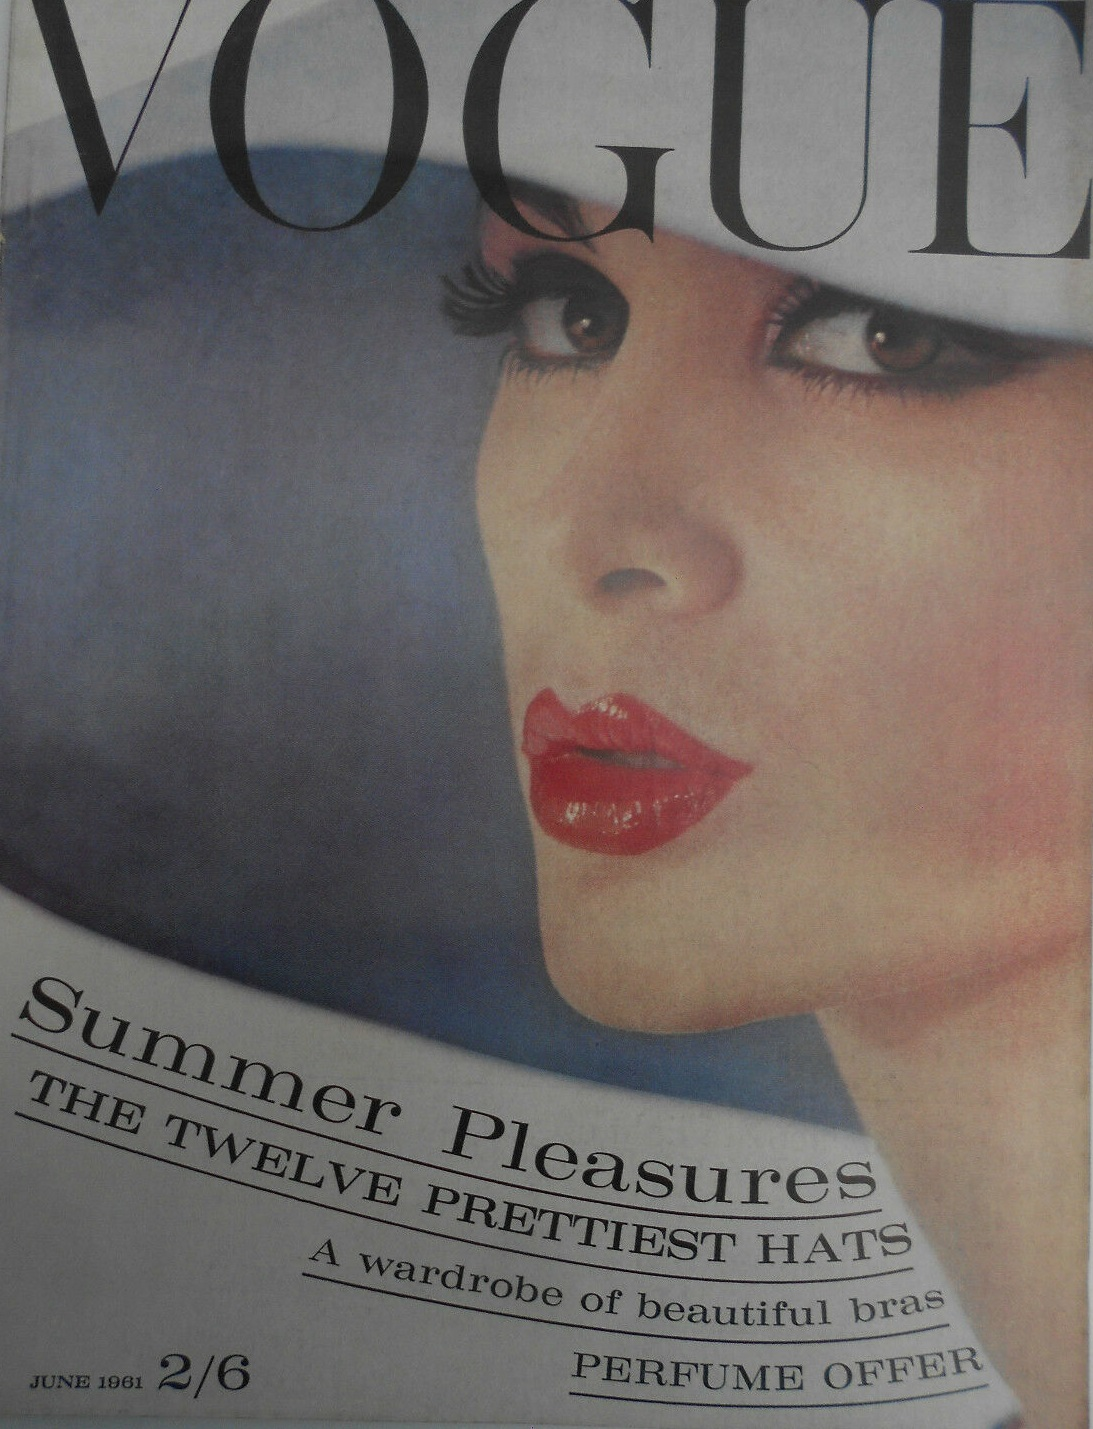 British Vogue Cover June 1961